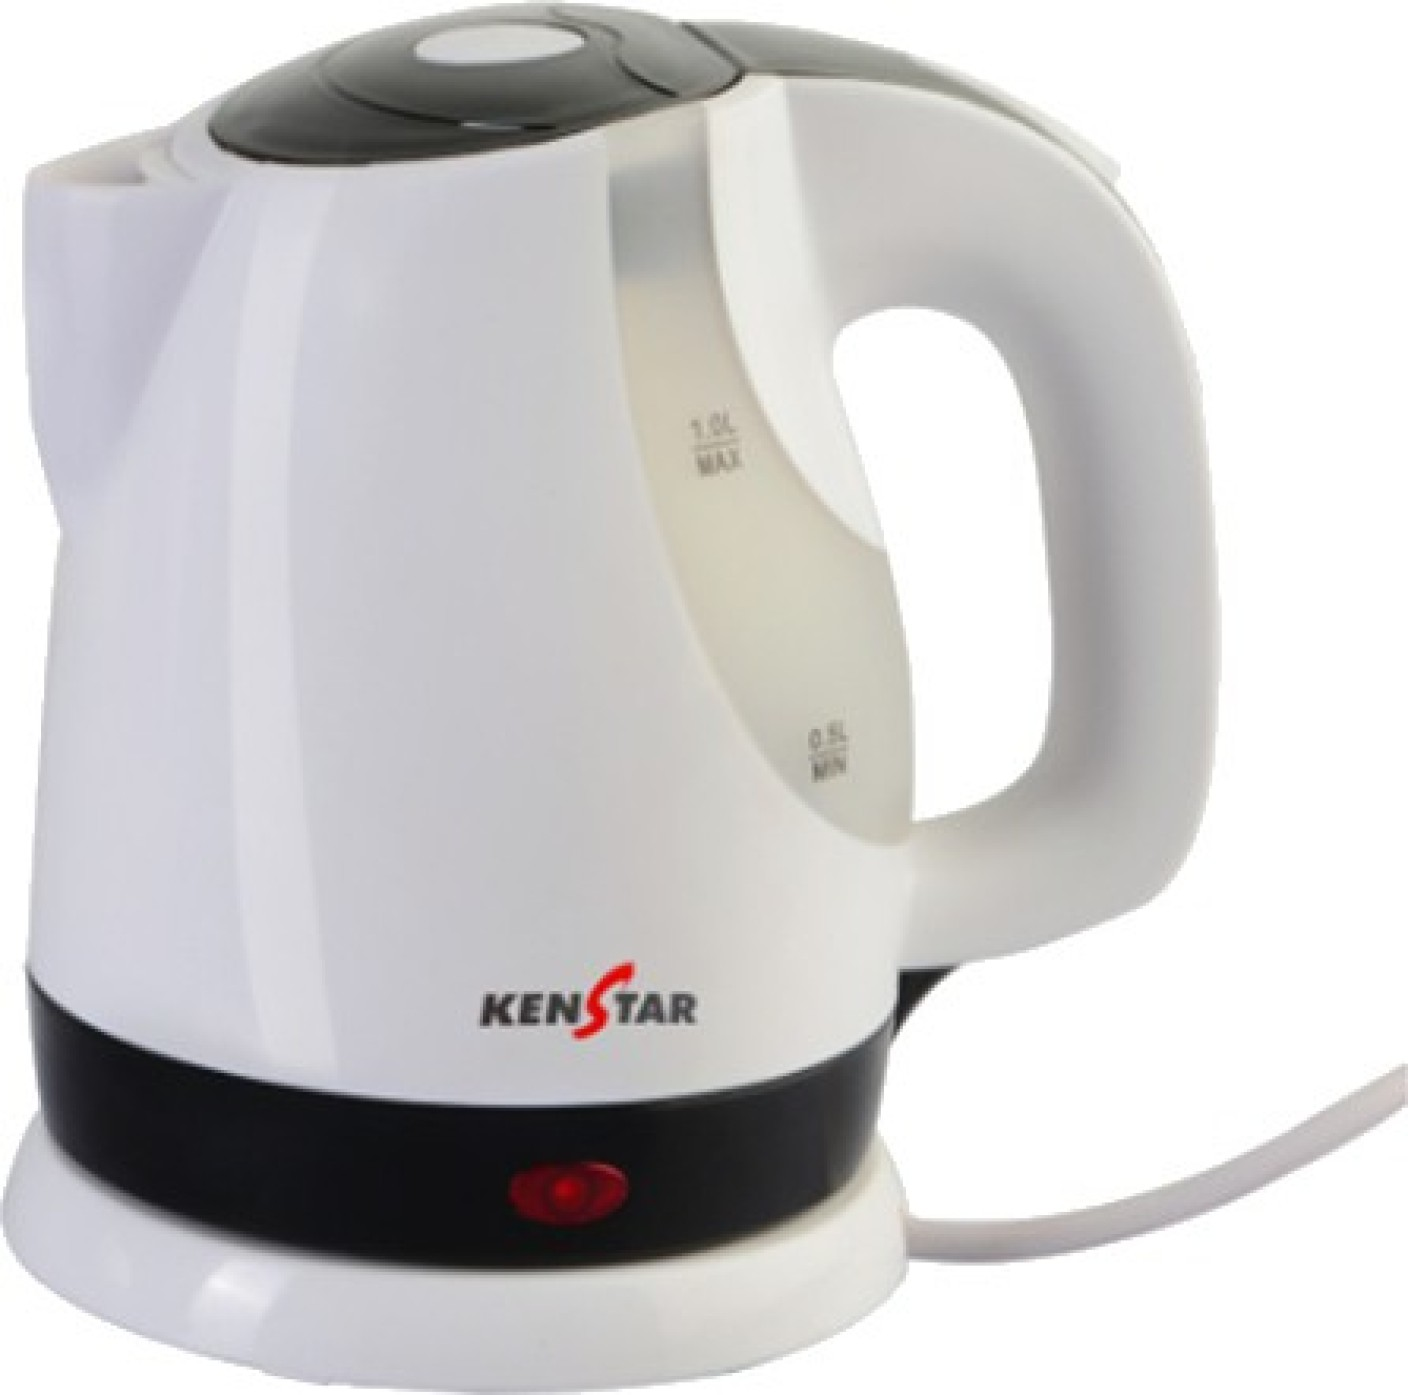 Uncategorized Kitchen Electrical Appliances Online electric kettles buy jugkettles online at best prices kenstar kkb10c3p dbh kettle